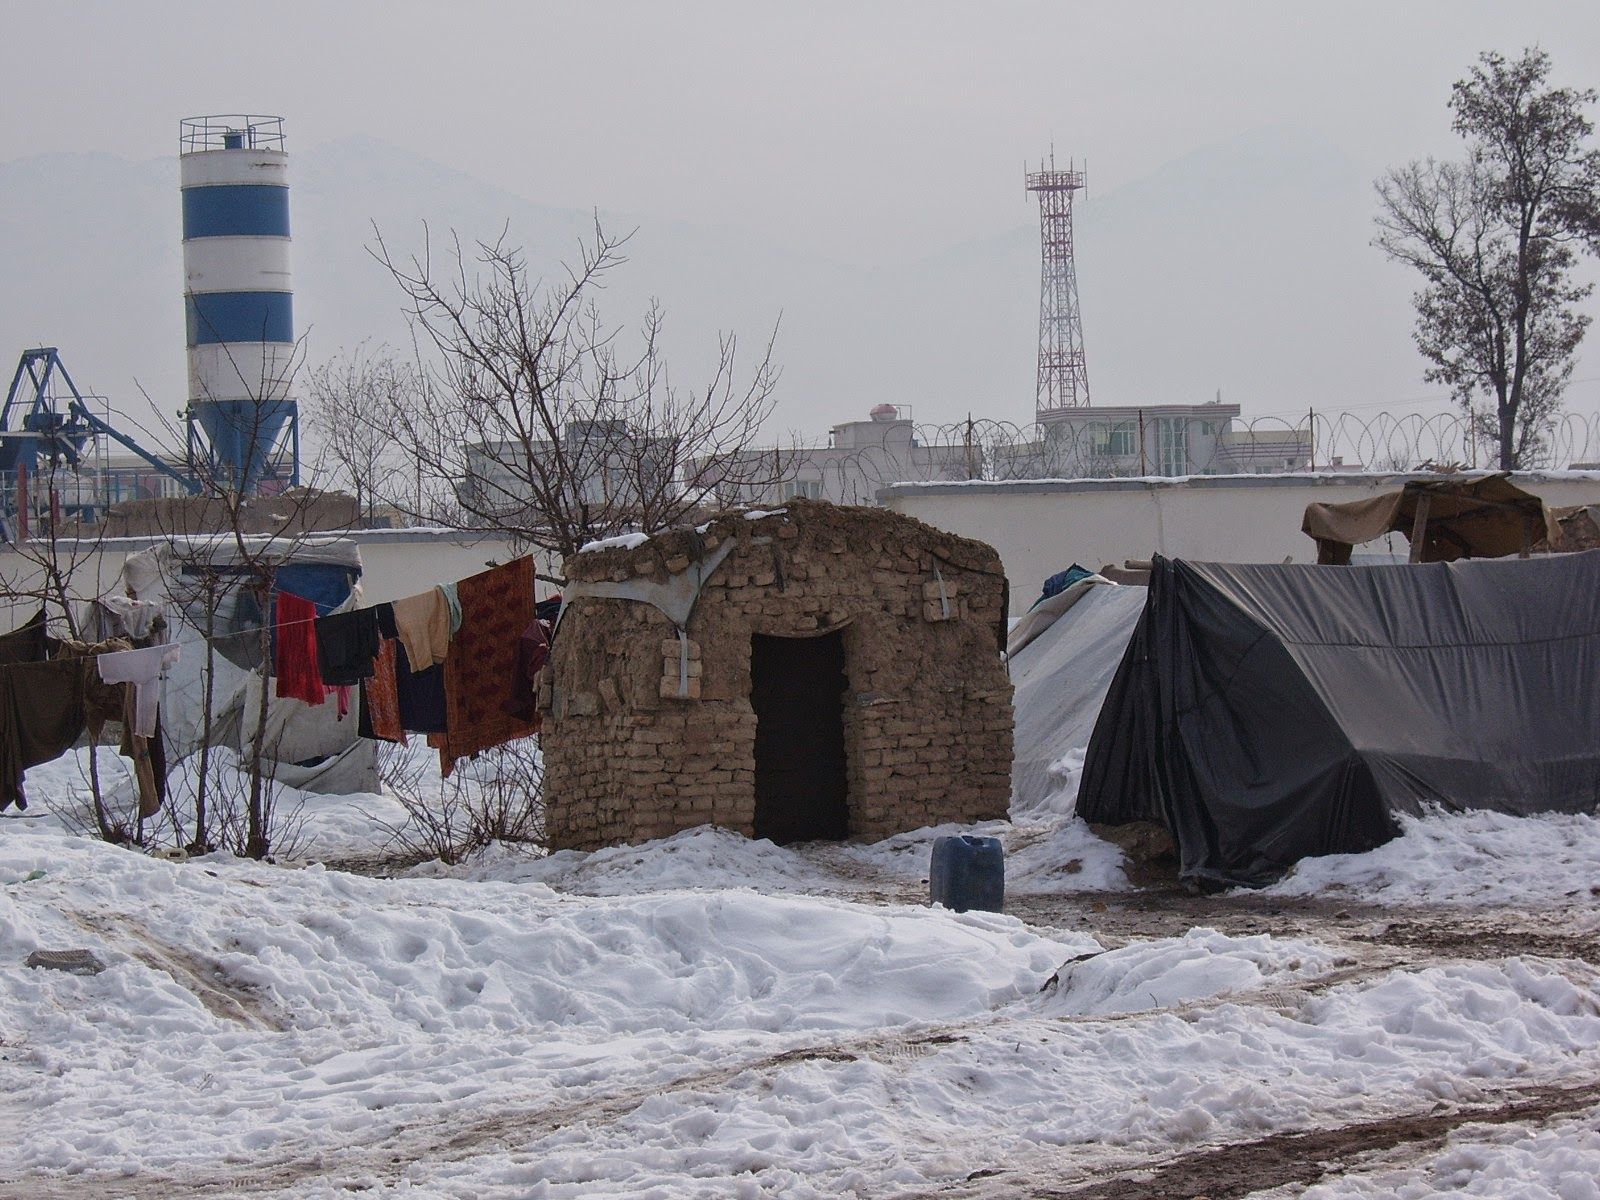 Afghan refugee tents in the snow.